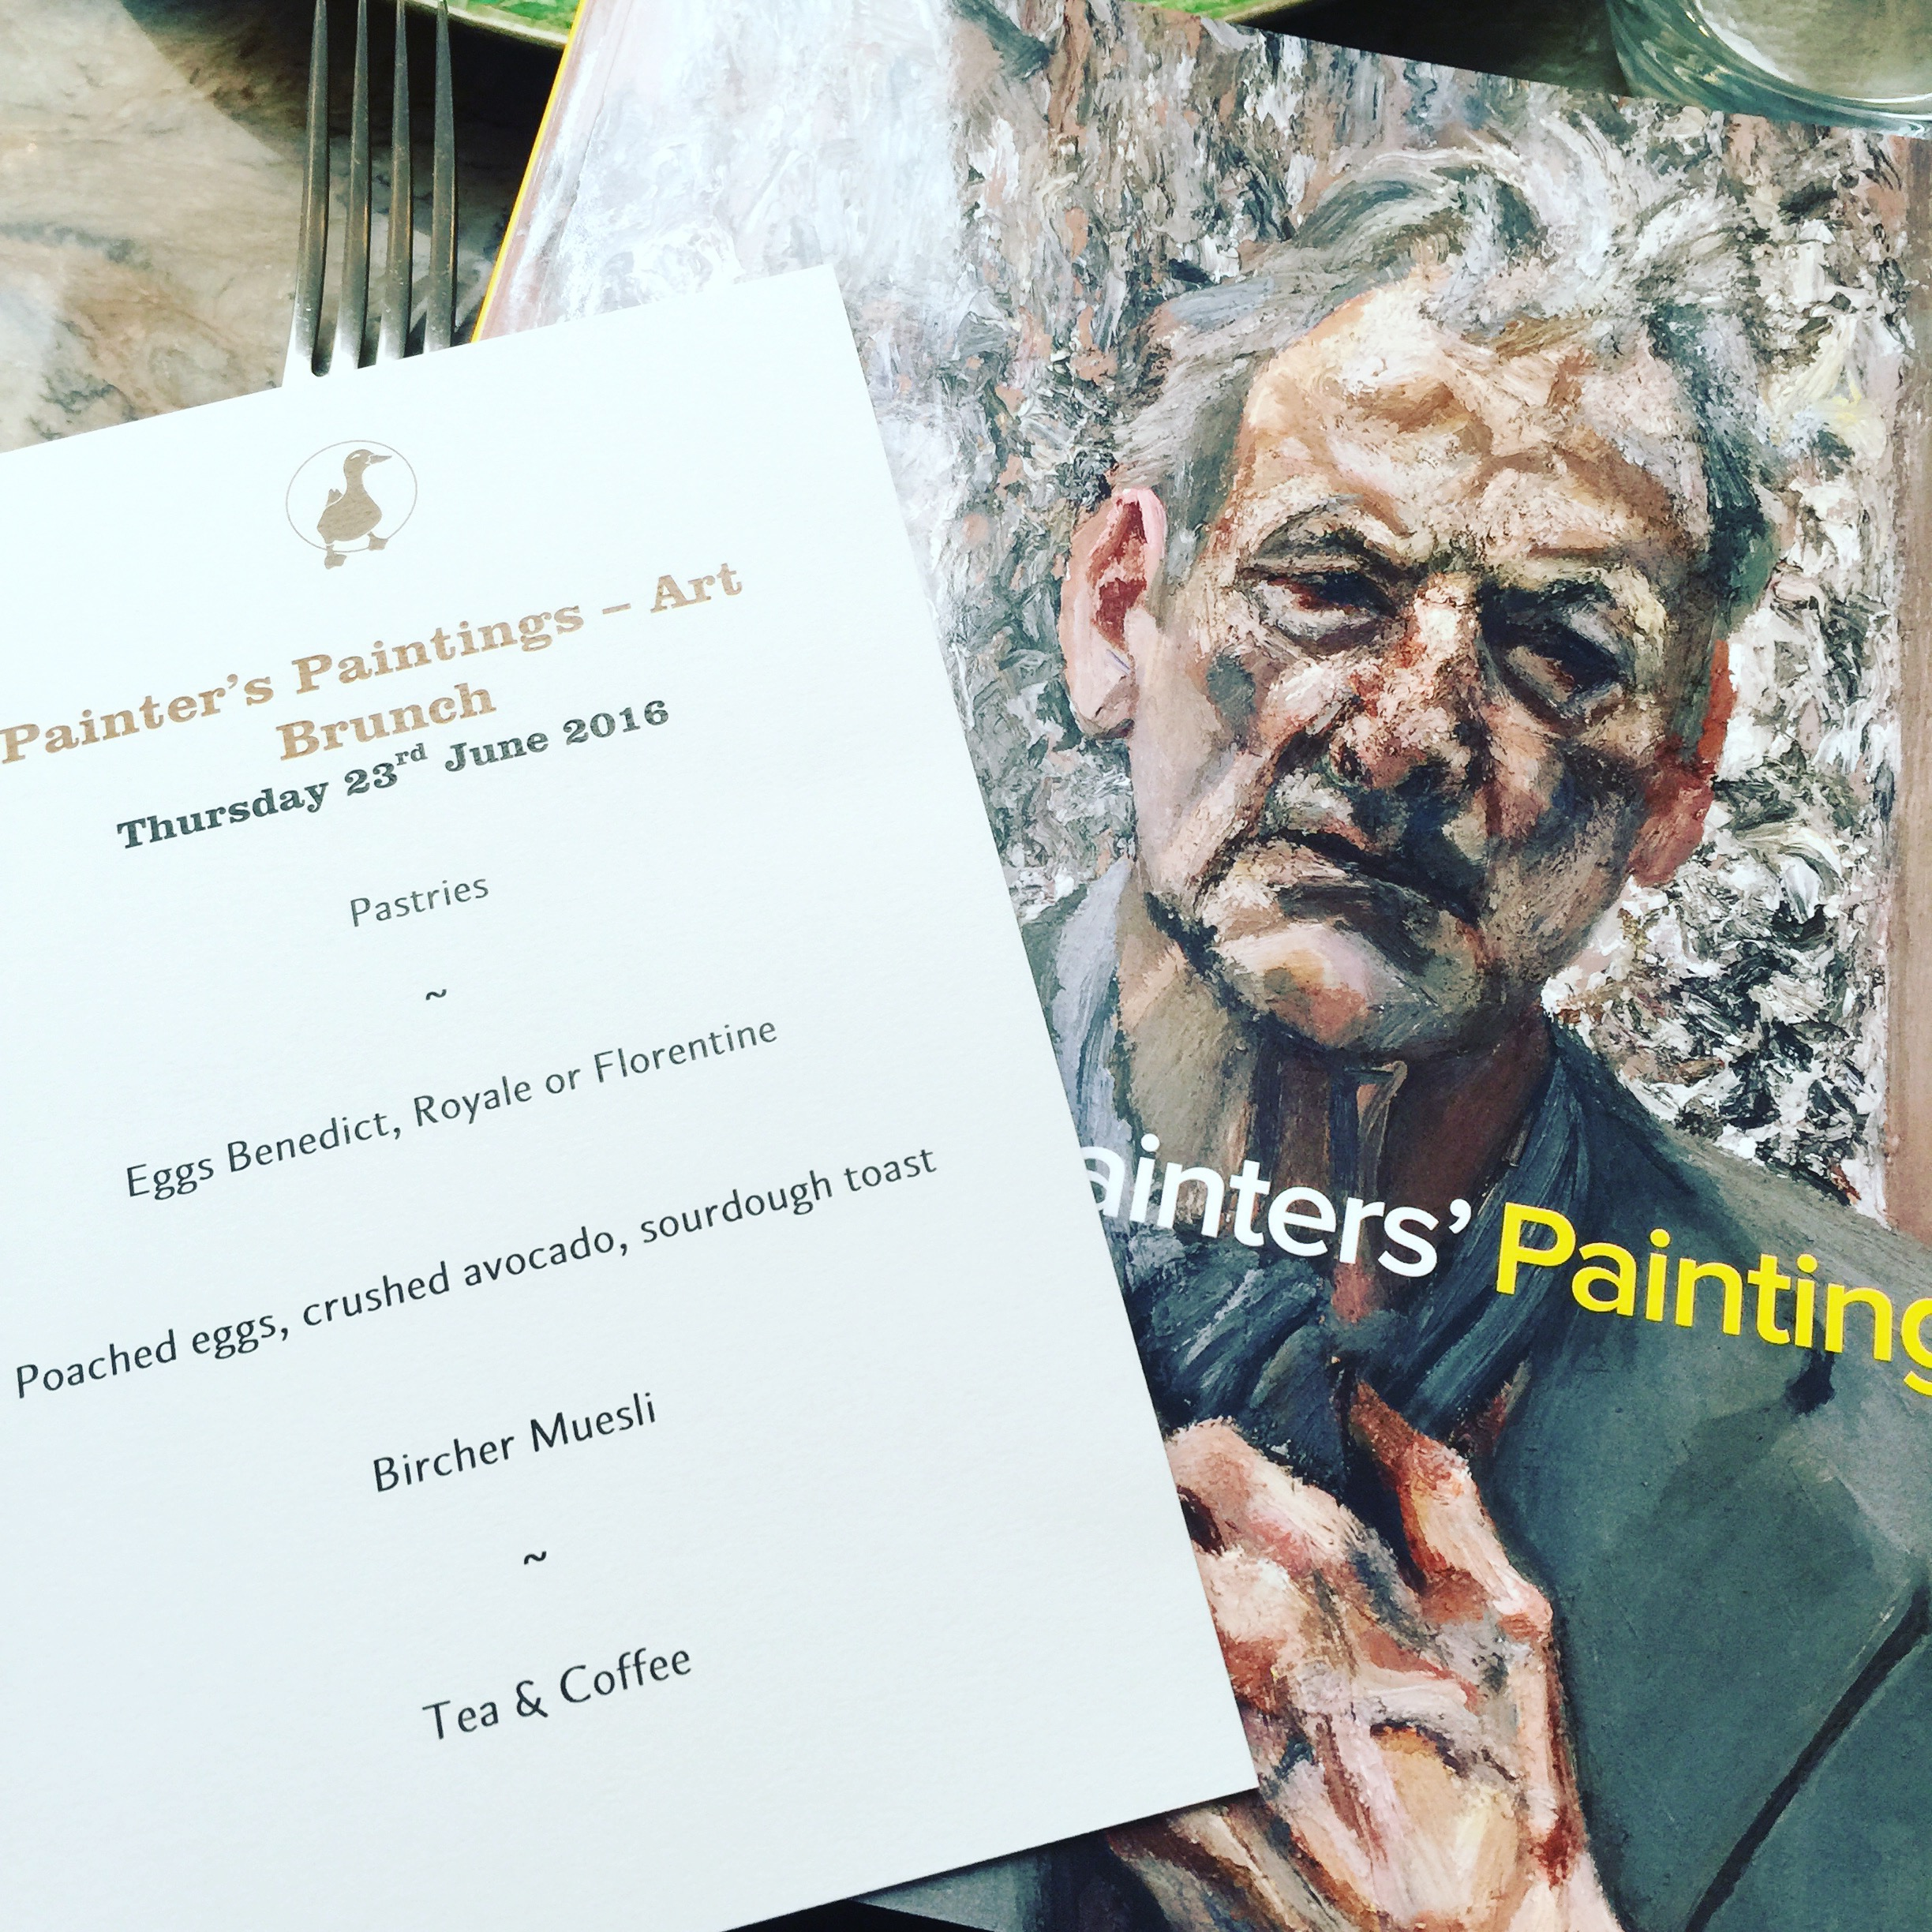 Painters' Paintings | The National Gallery | The Groucho Club | Art Review